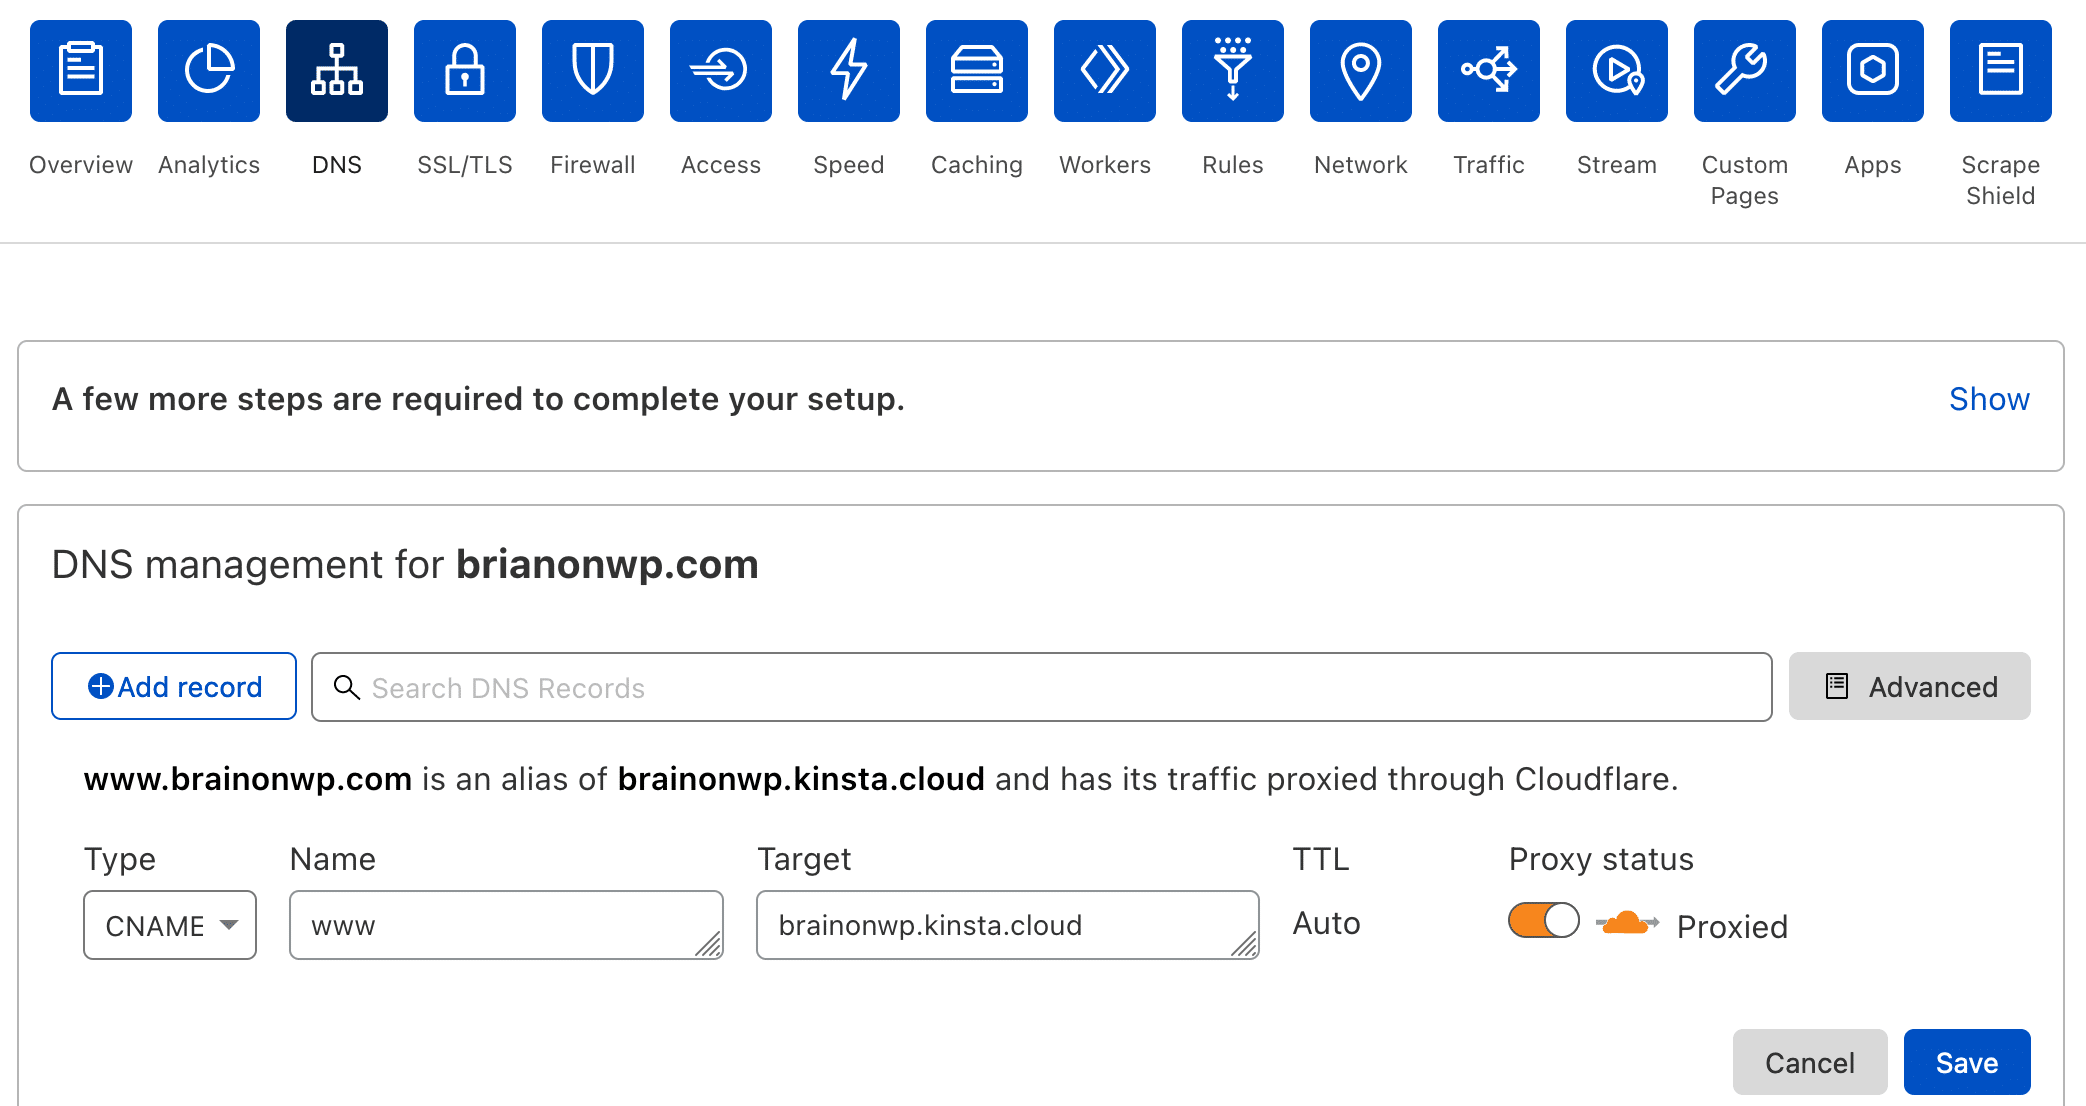 Create a CNAME record for your www domain at Cloudflare.